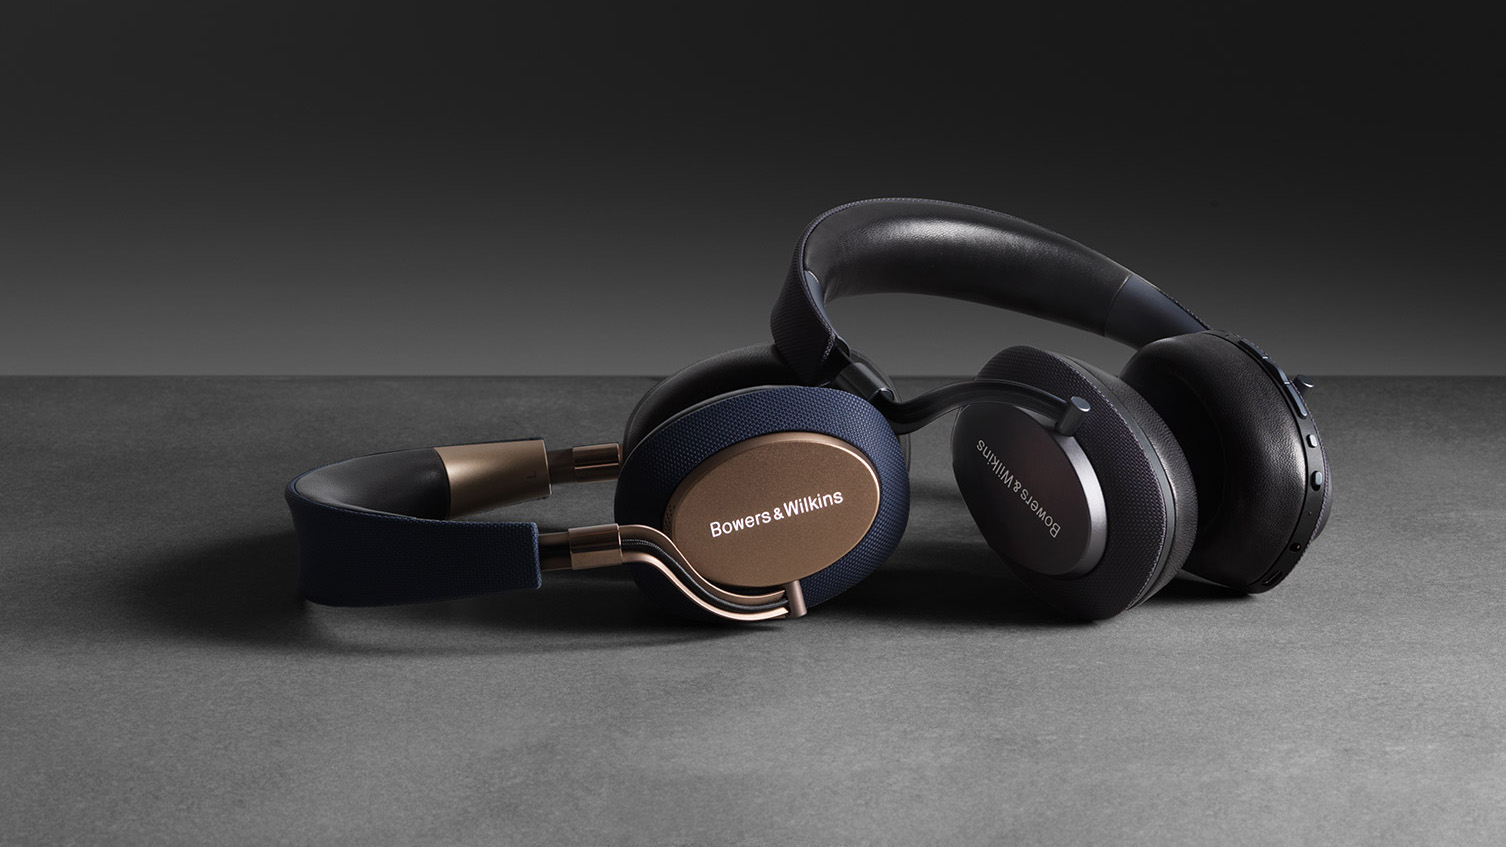 Bluetooth-наушники Bowers & Wilkins PX с микрофоном (Soft Gold)